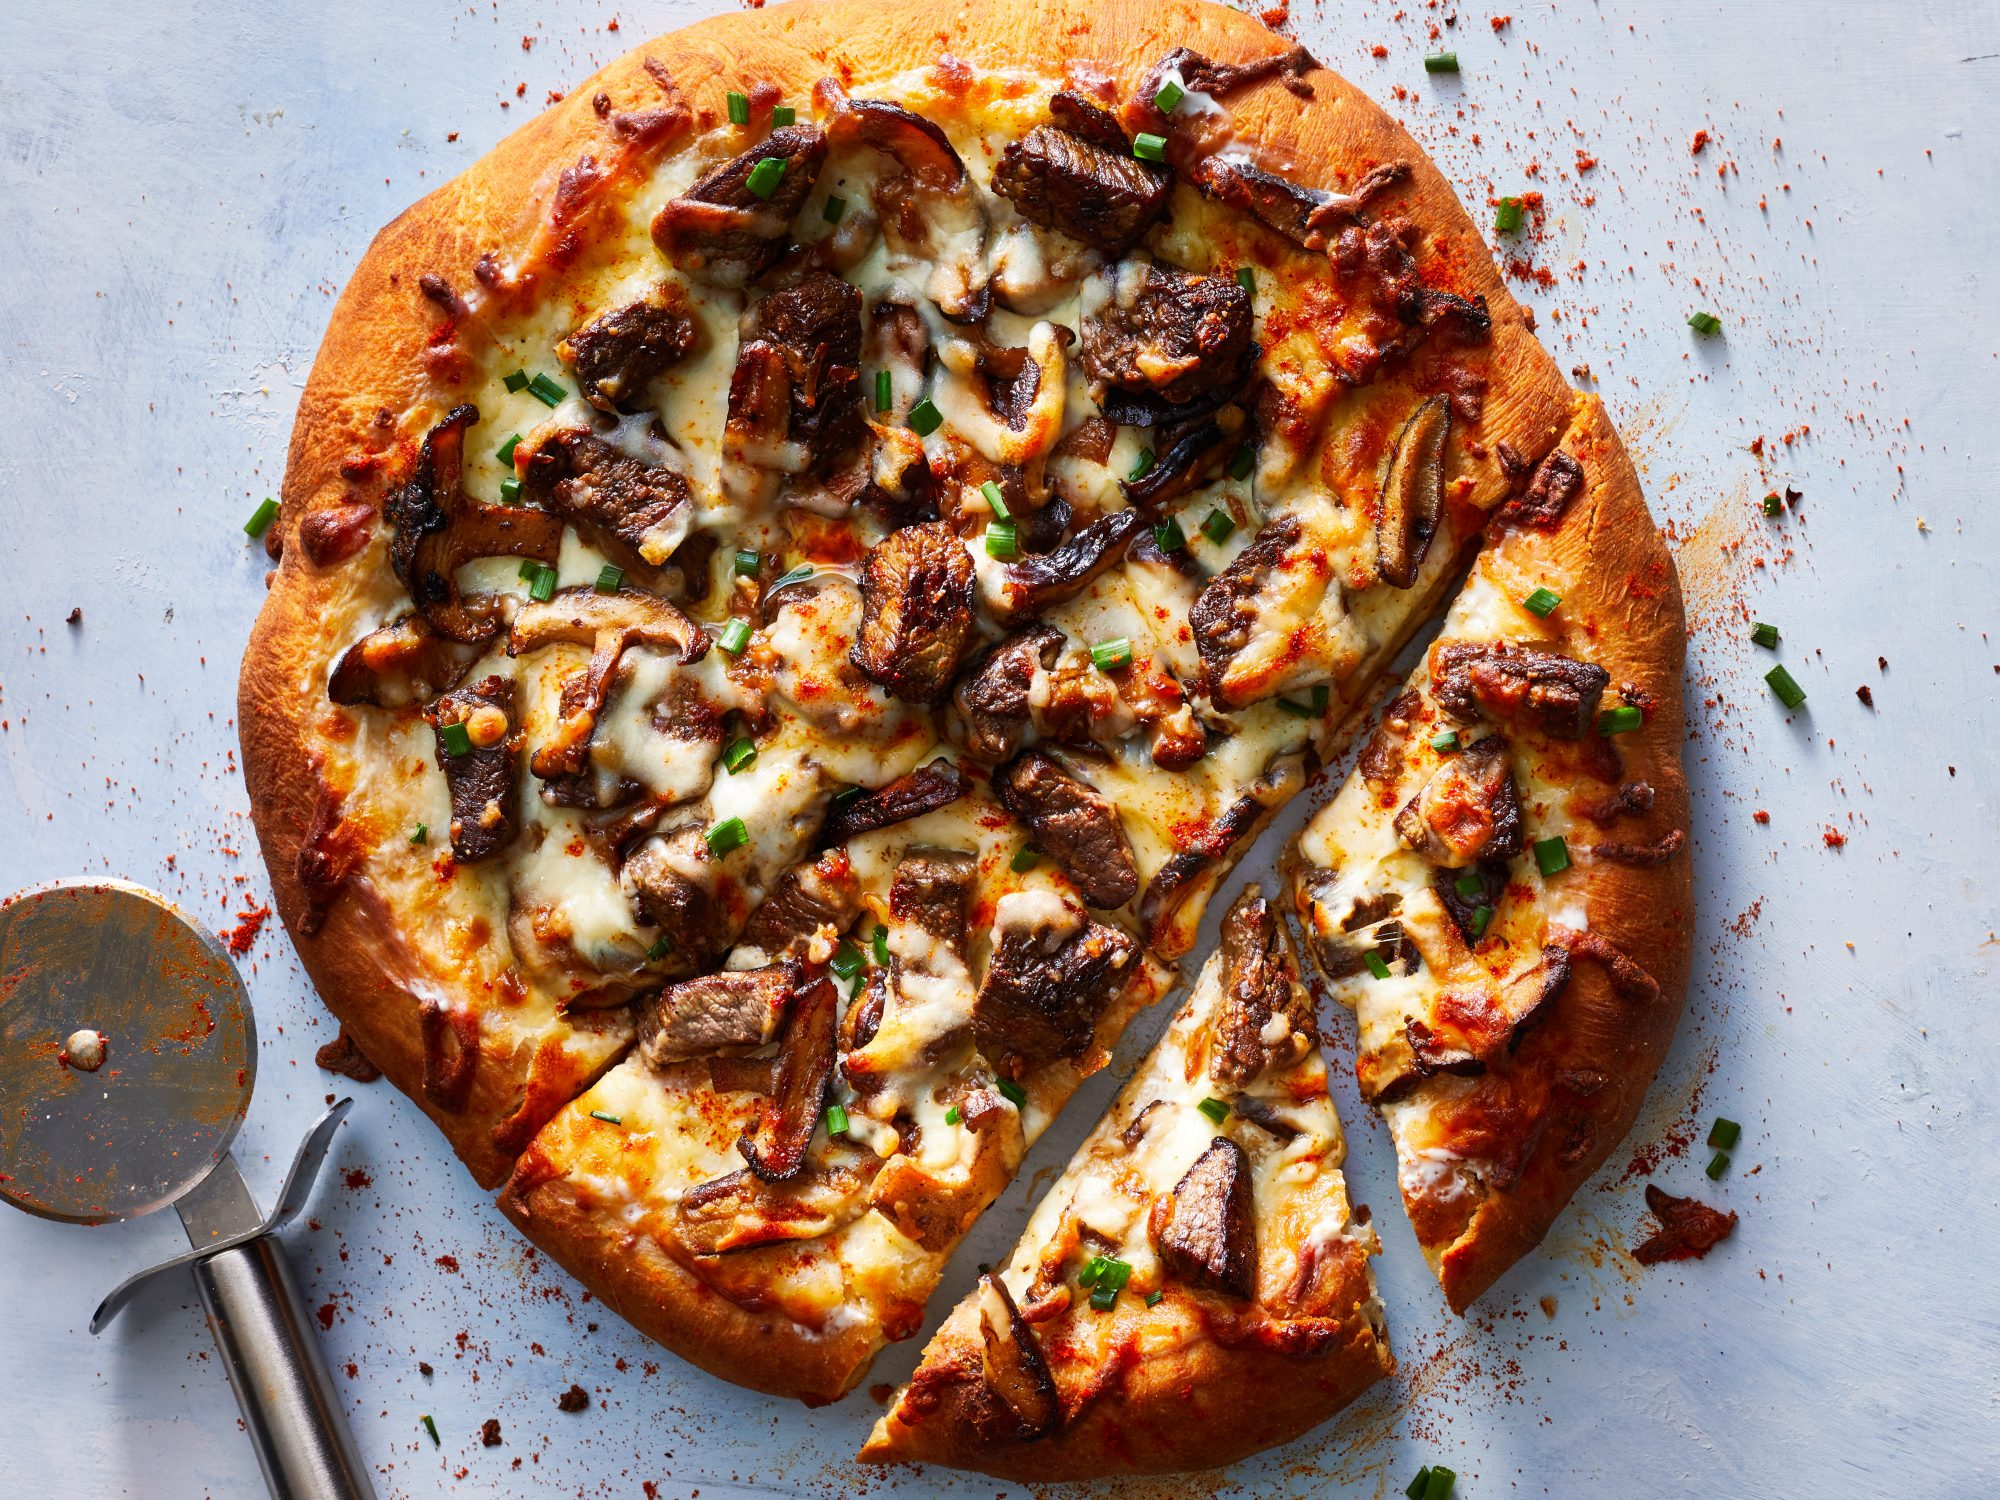 mr-beef stroganoff pizza image